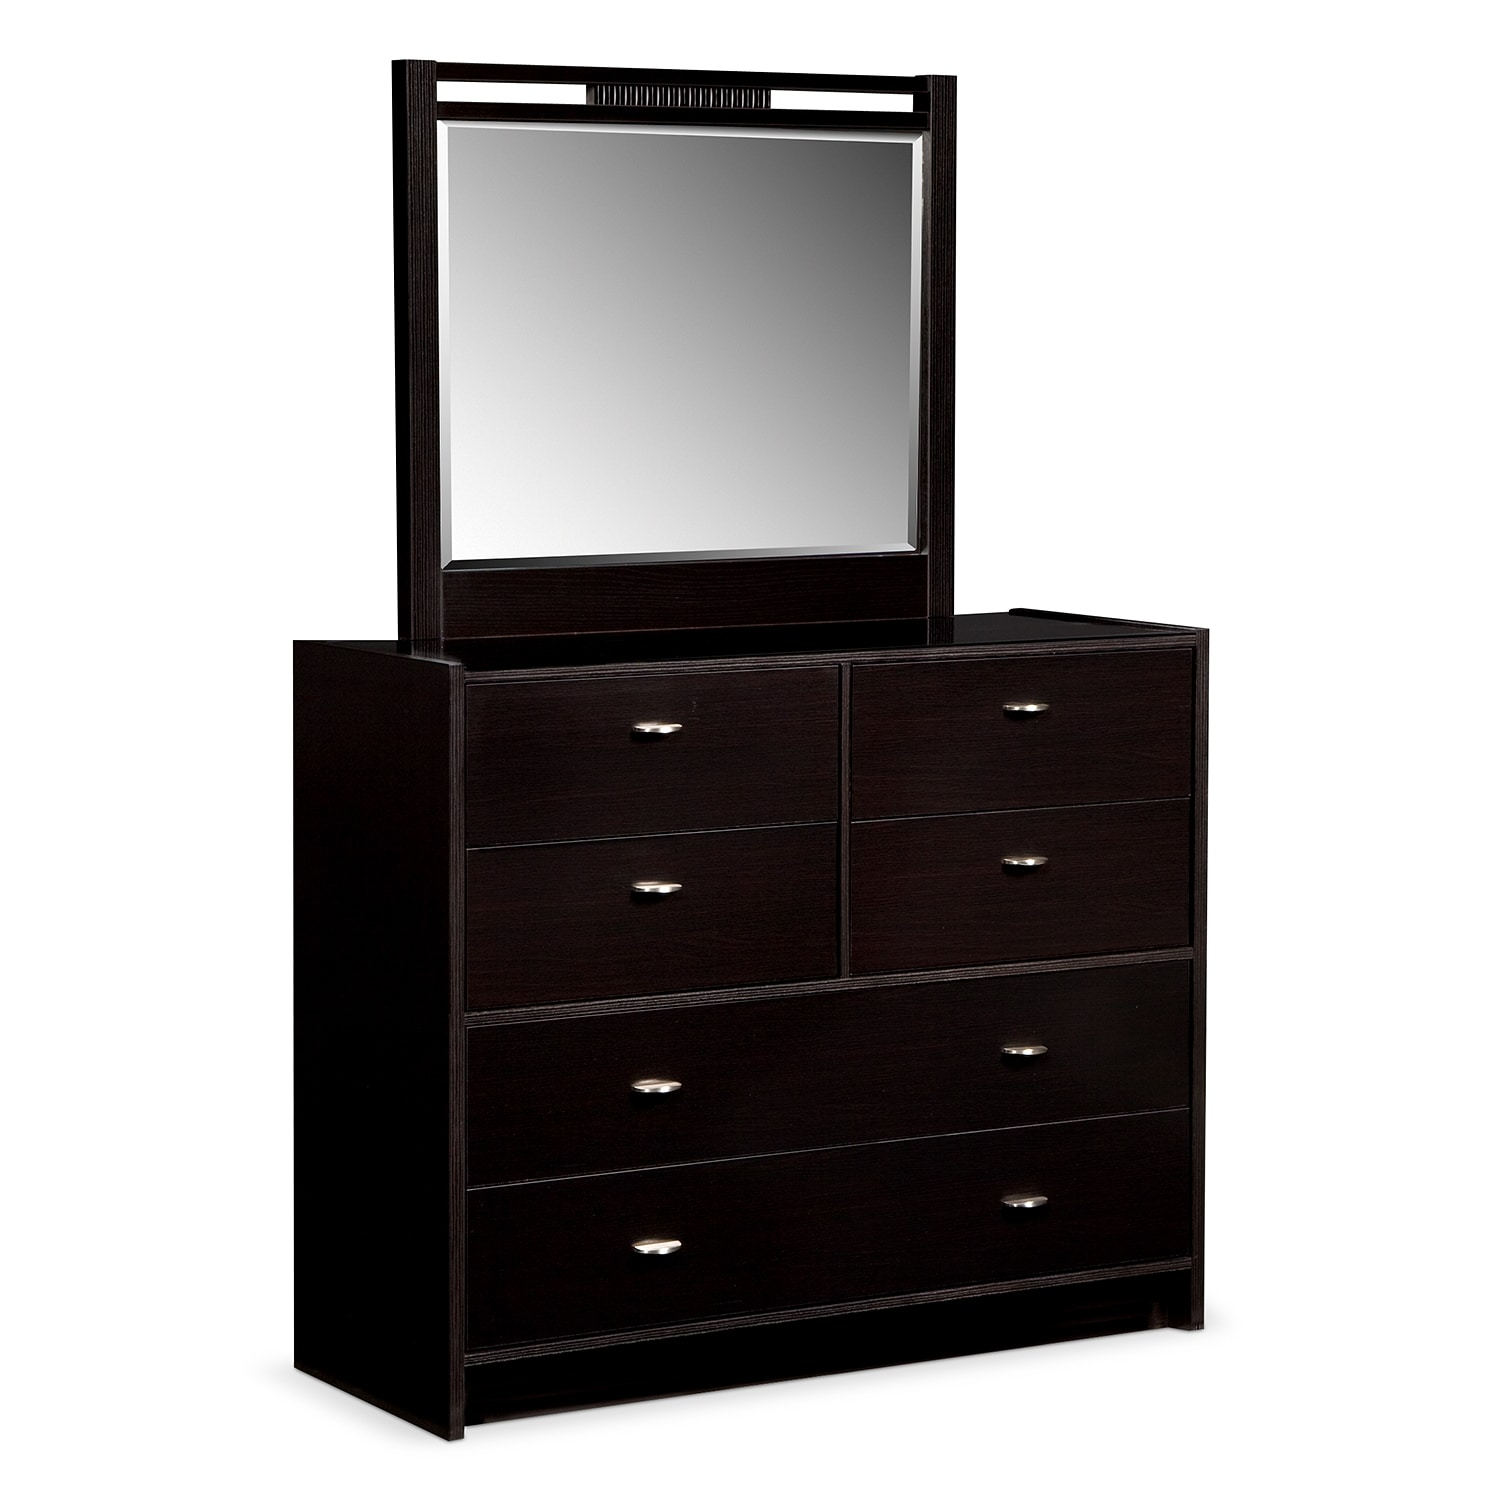 Bally Dresser and Mirror - Espresso